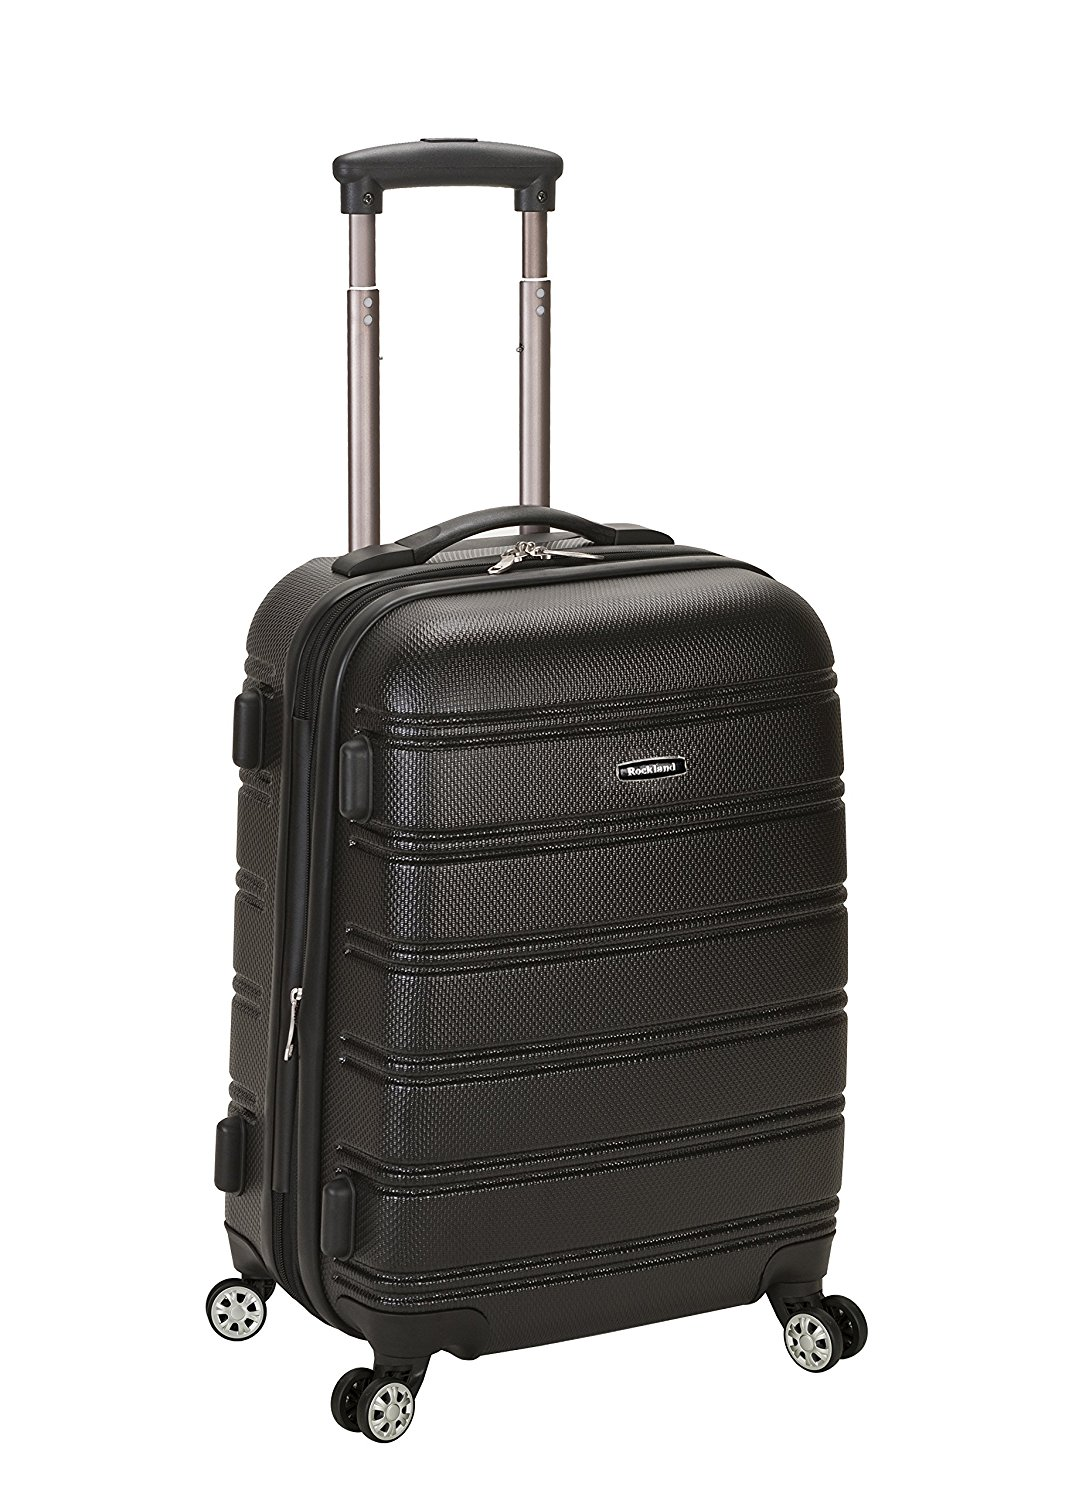 Rockland Luggage Melbourne 20 Inch Expandable Abs Carry-On Luggage